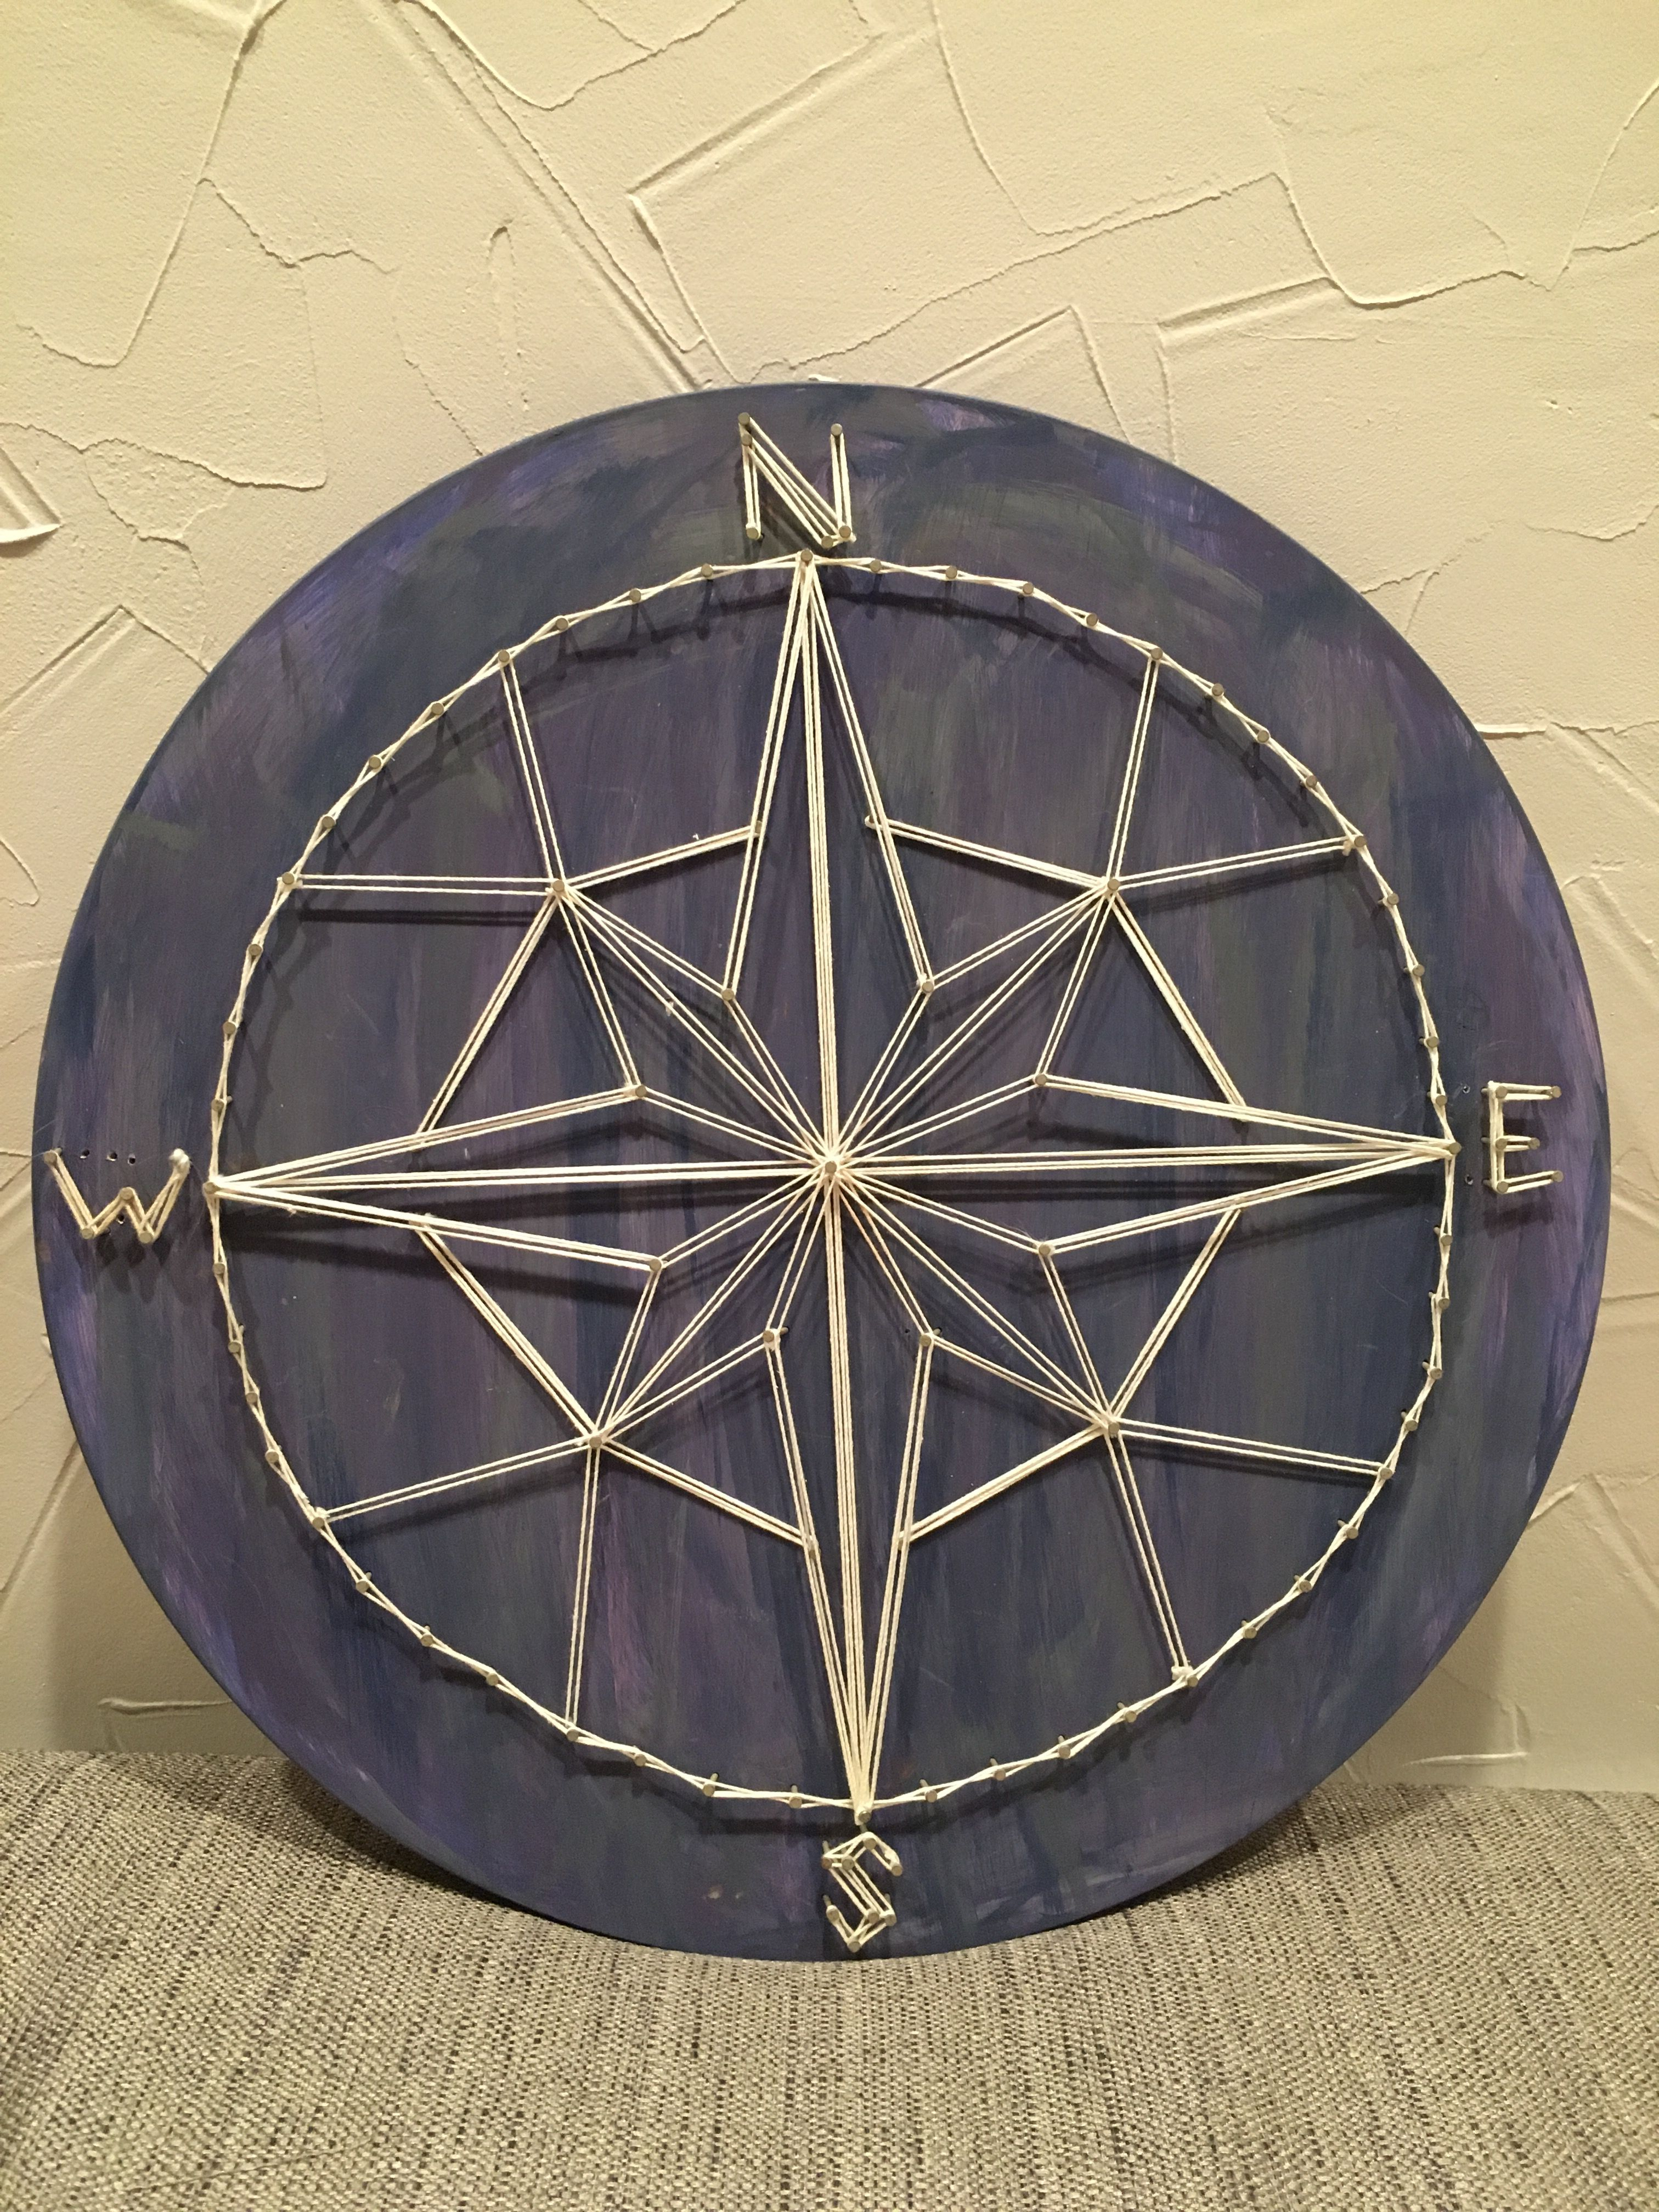 String Art Compass To Go With Diy Map Wall Art | Hartford With Round Compass Wall Decor (View 17 of 30)